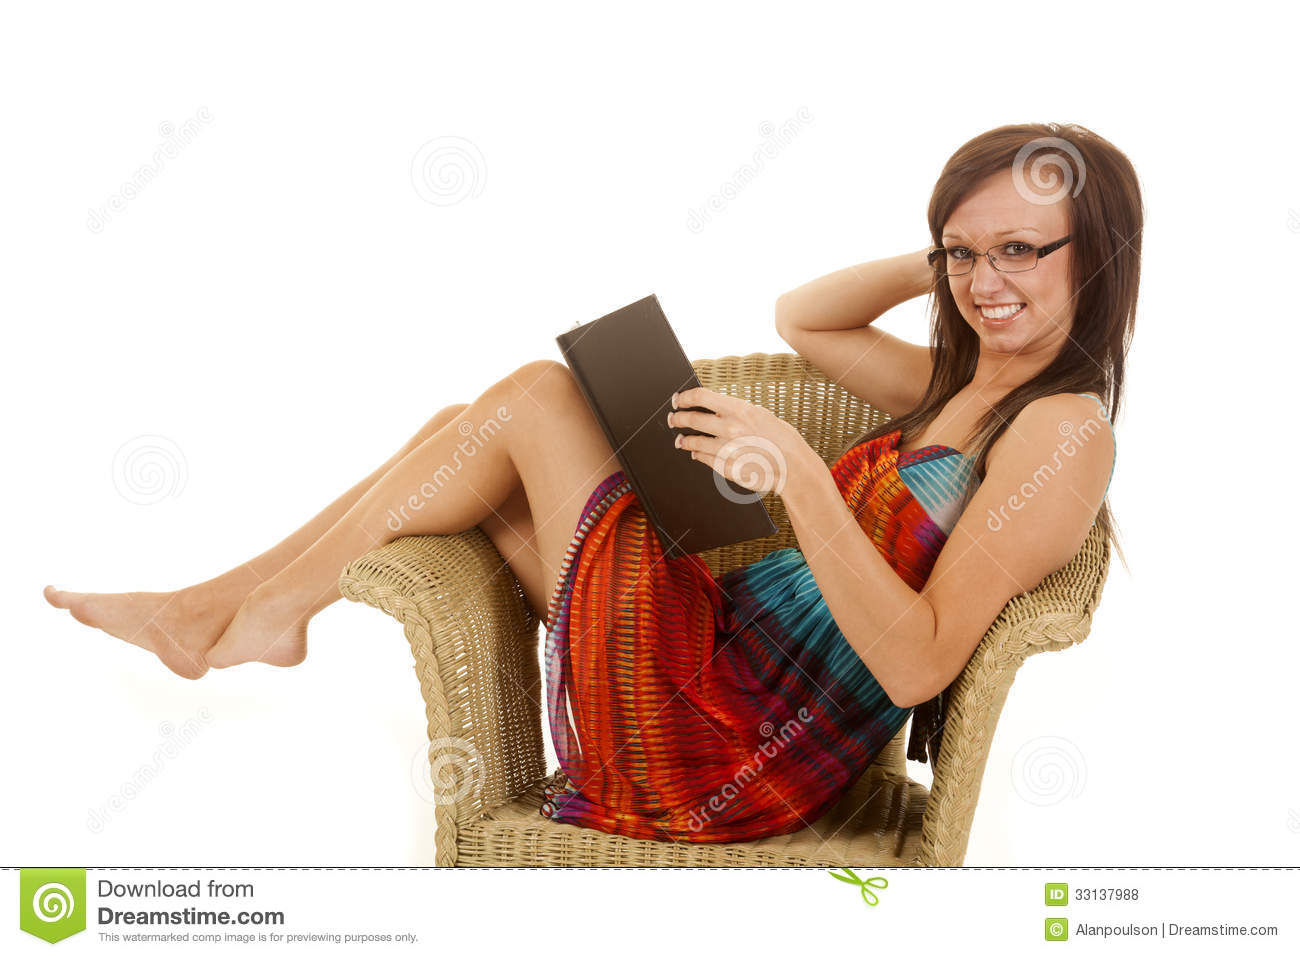 Woman Sitting Colorful Dress Wicker Chair Book Royalty